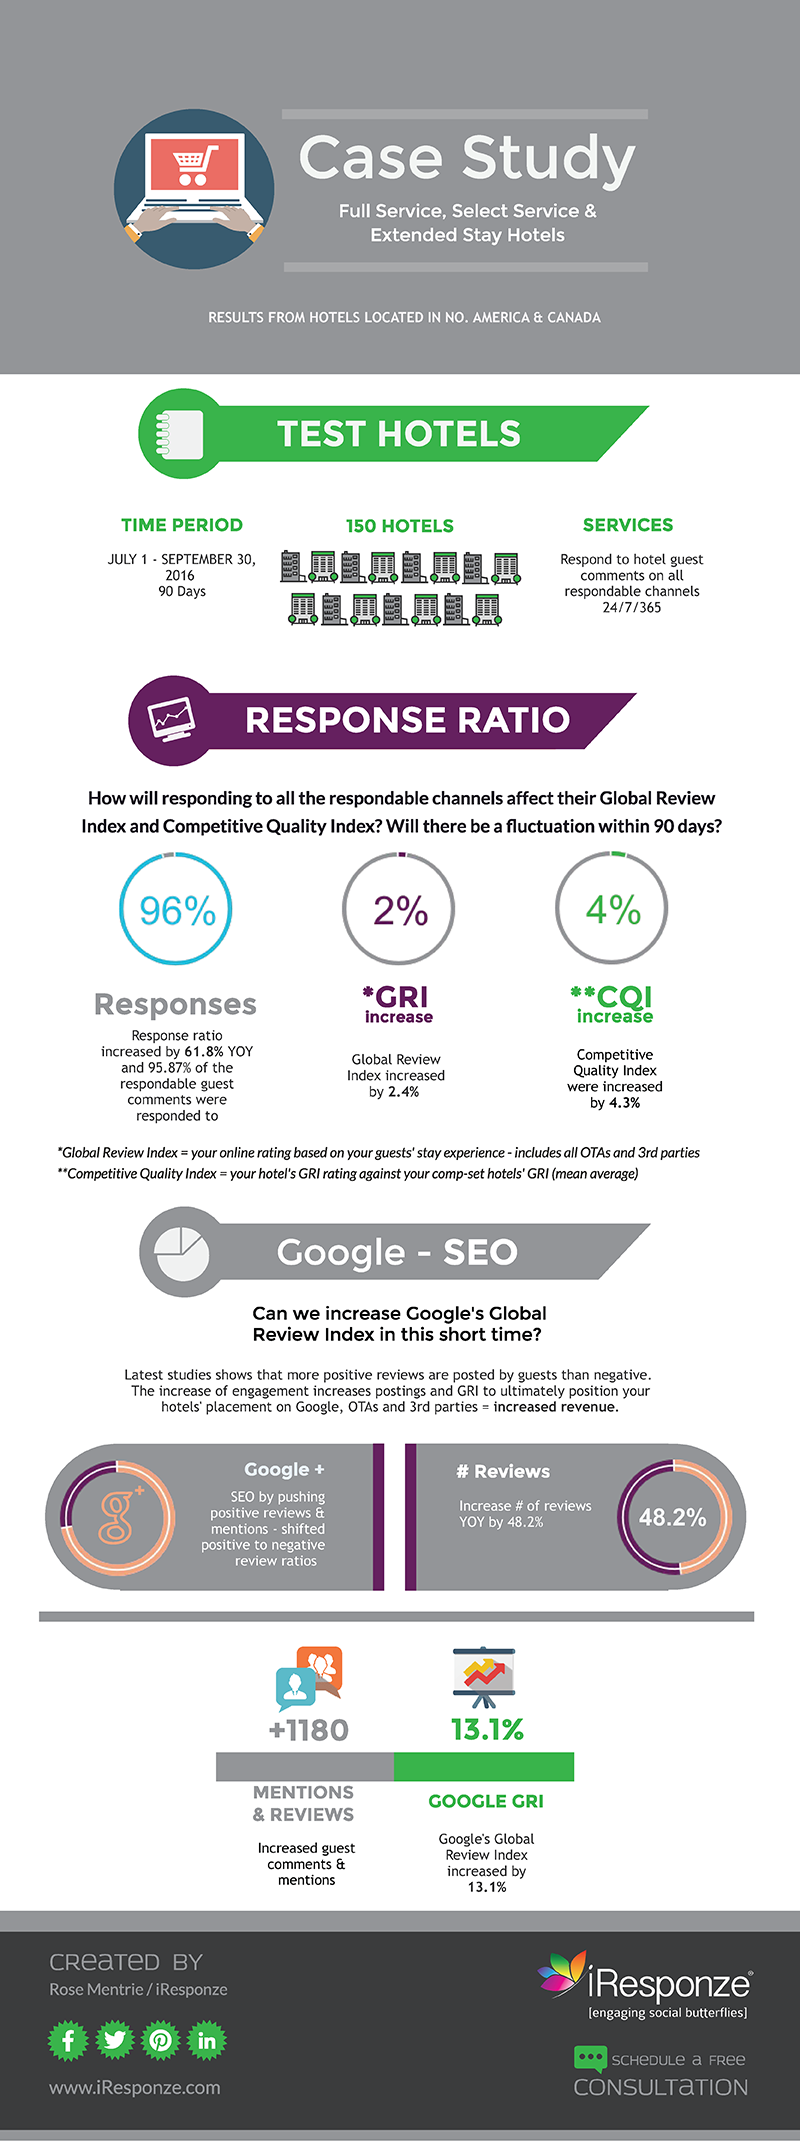 How-responding-to-reviews-affects-GRI-CQI.png